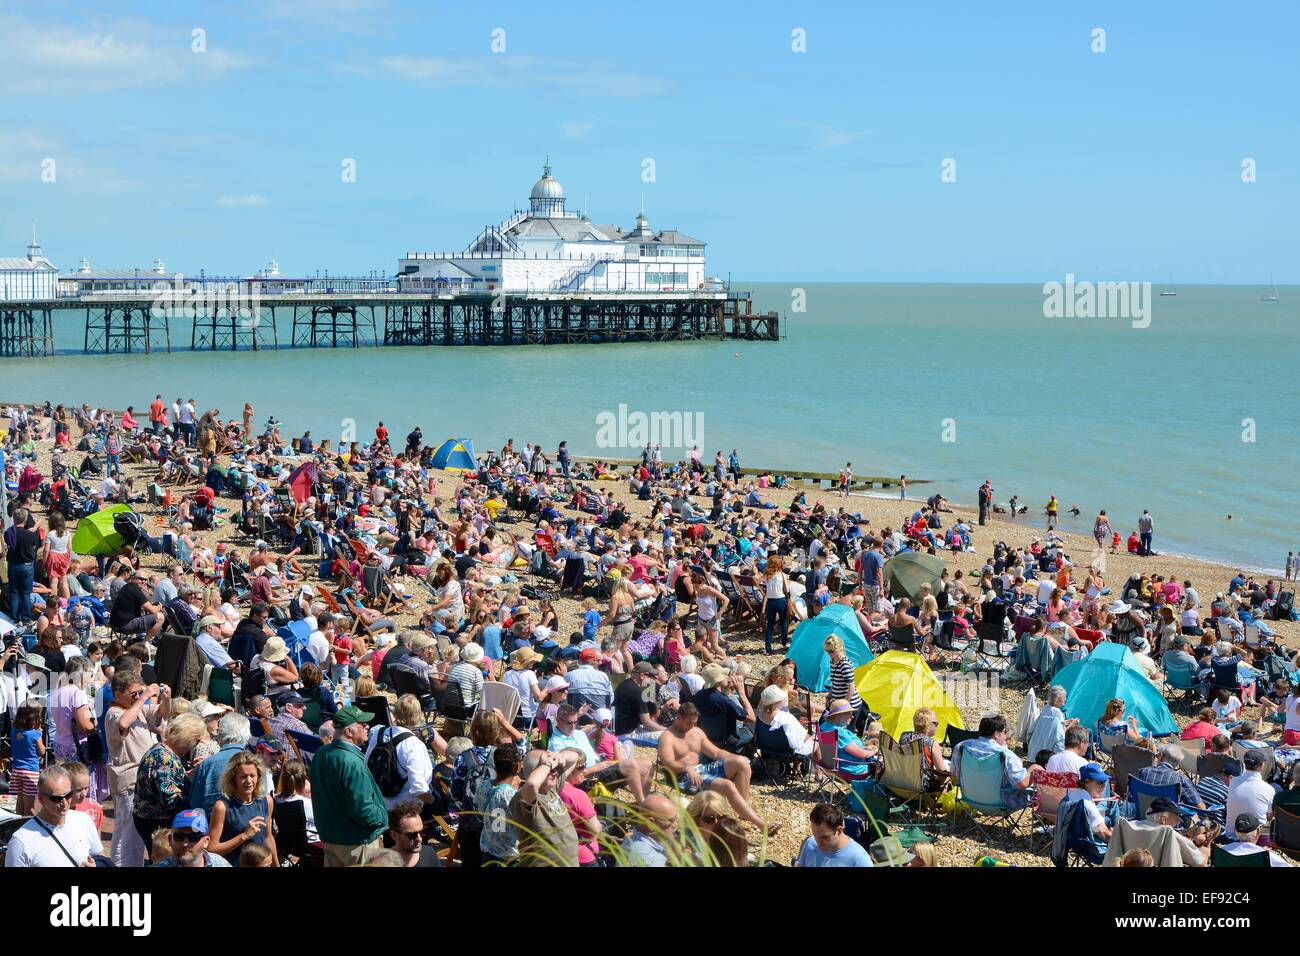 Eastbourne Air Show >> Crowds On Beach At Eastbourne Airshow East Sussex England Stock